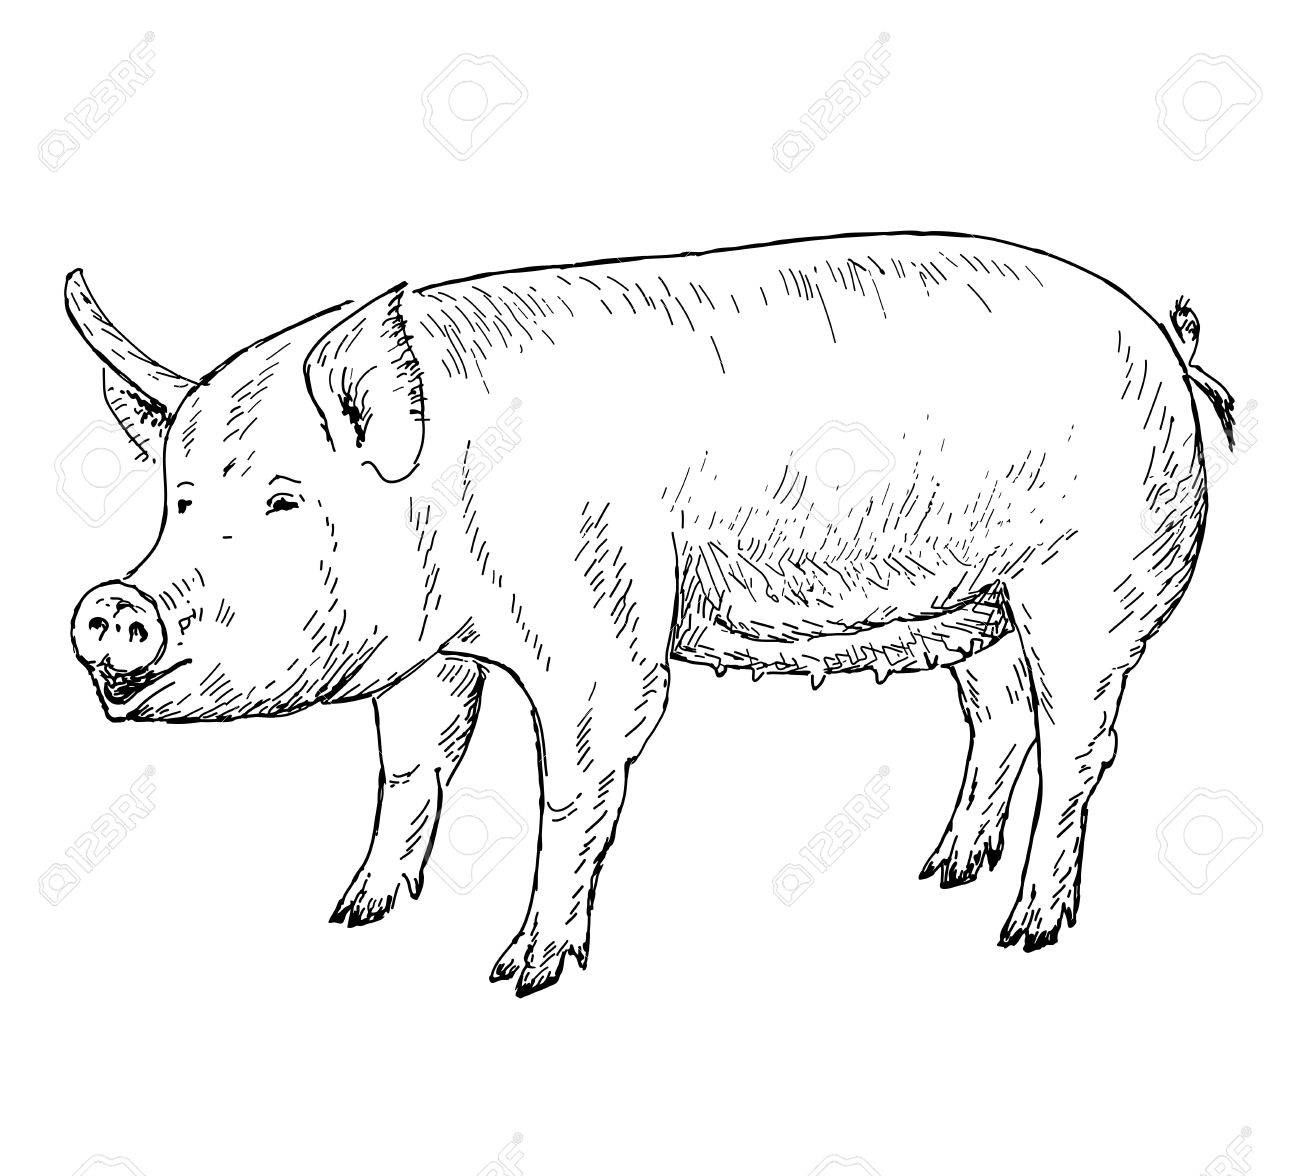 1300x1176 Pig Hands Drawing Royalty Free Cliparts, Vectors, And Stock